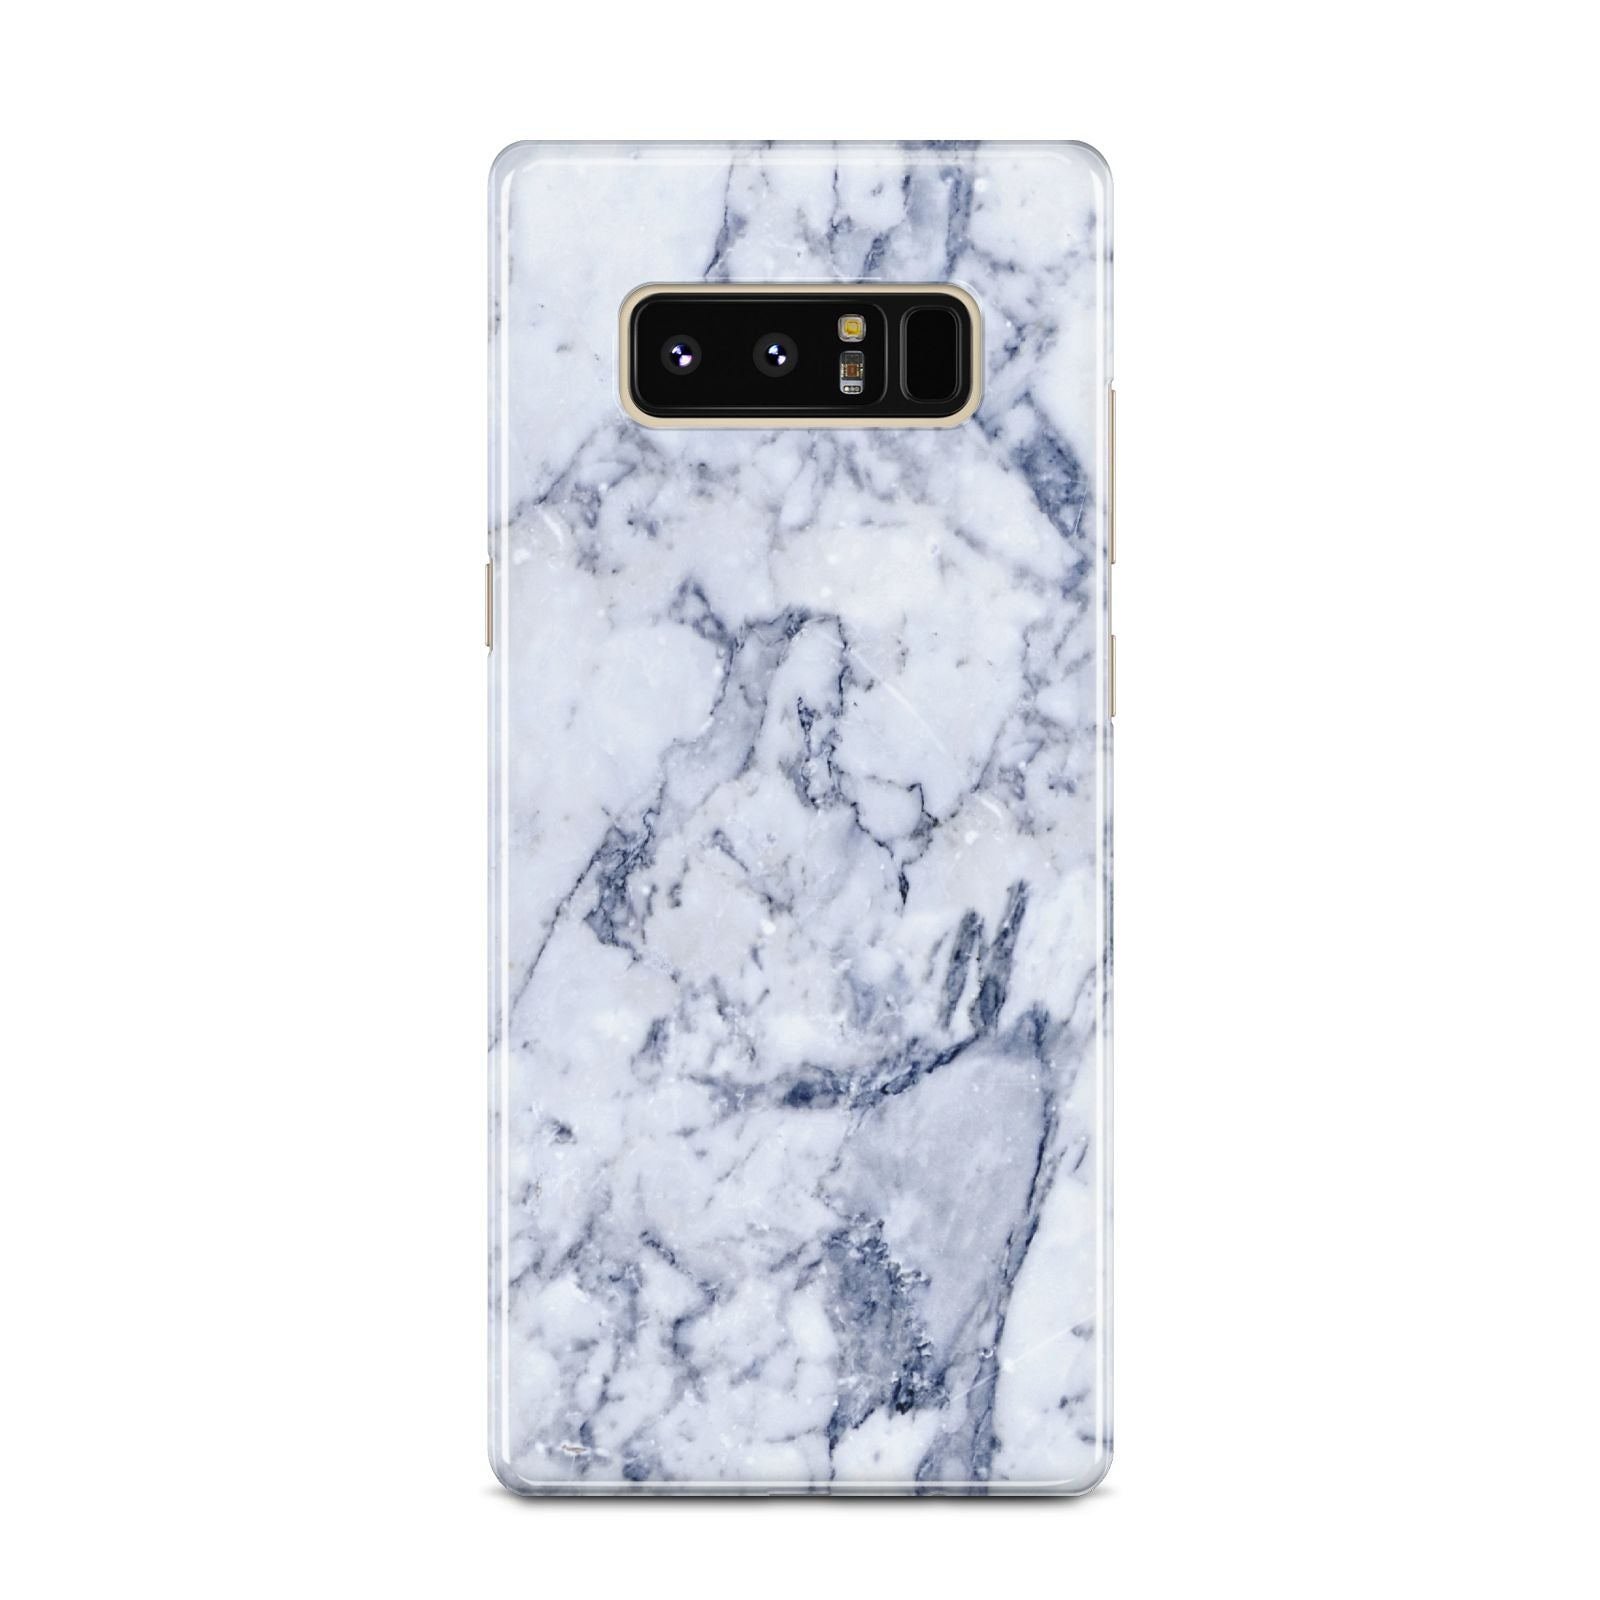 Faux Marble Blue Grey White Samsung Galaxy Note 8 Case